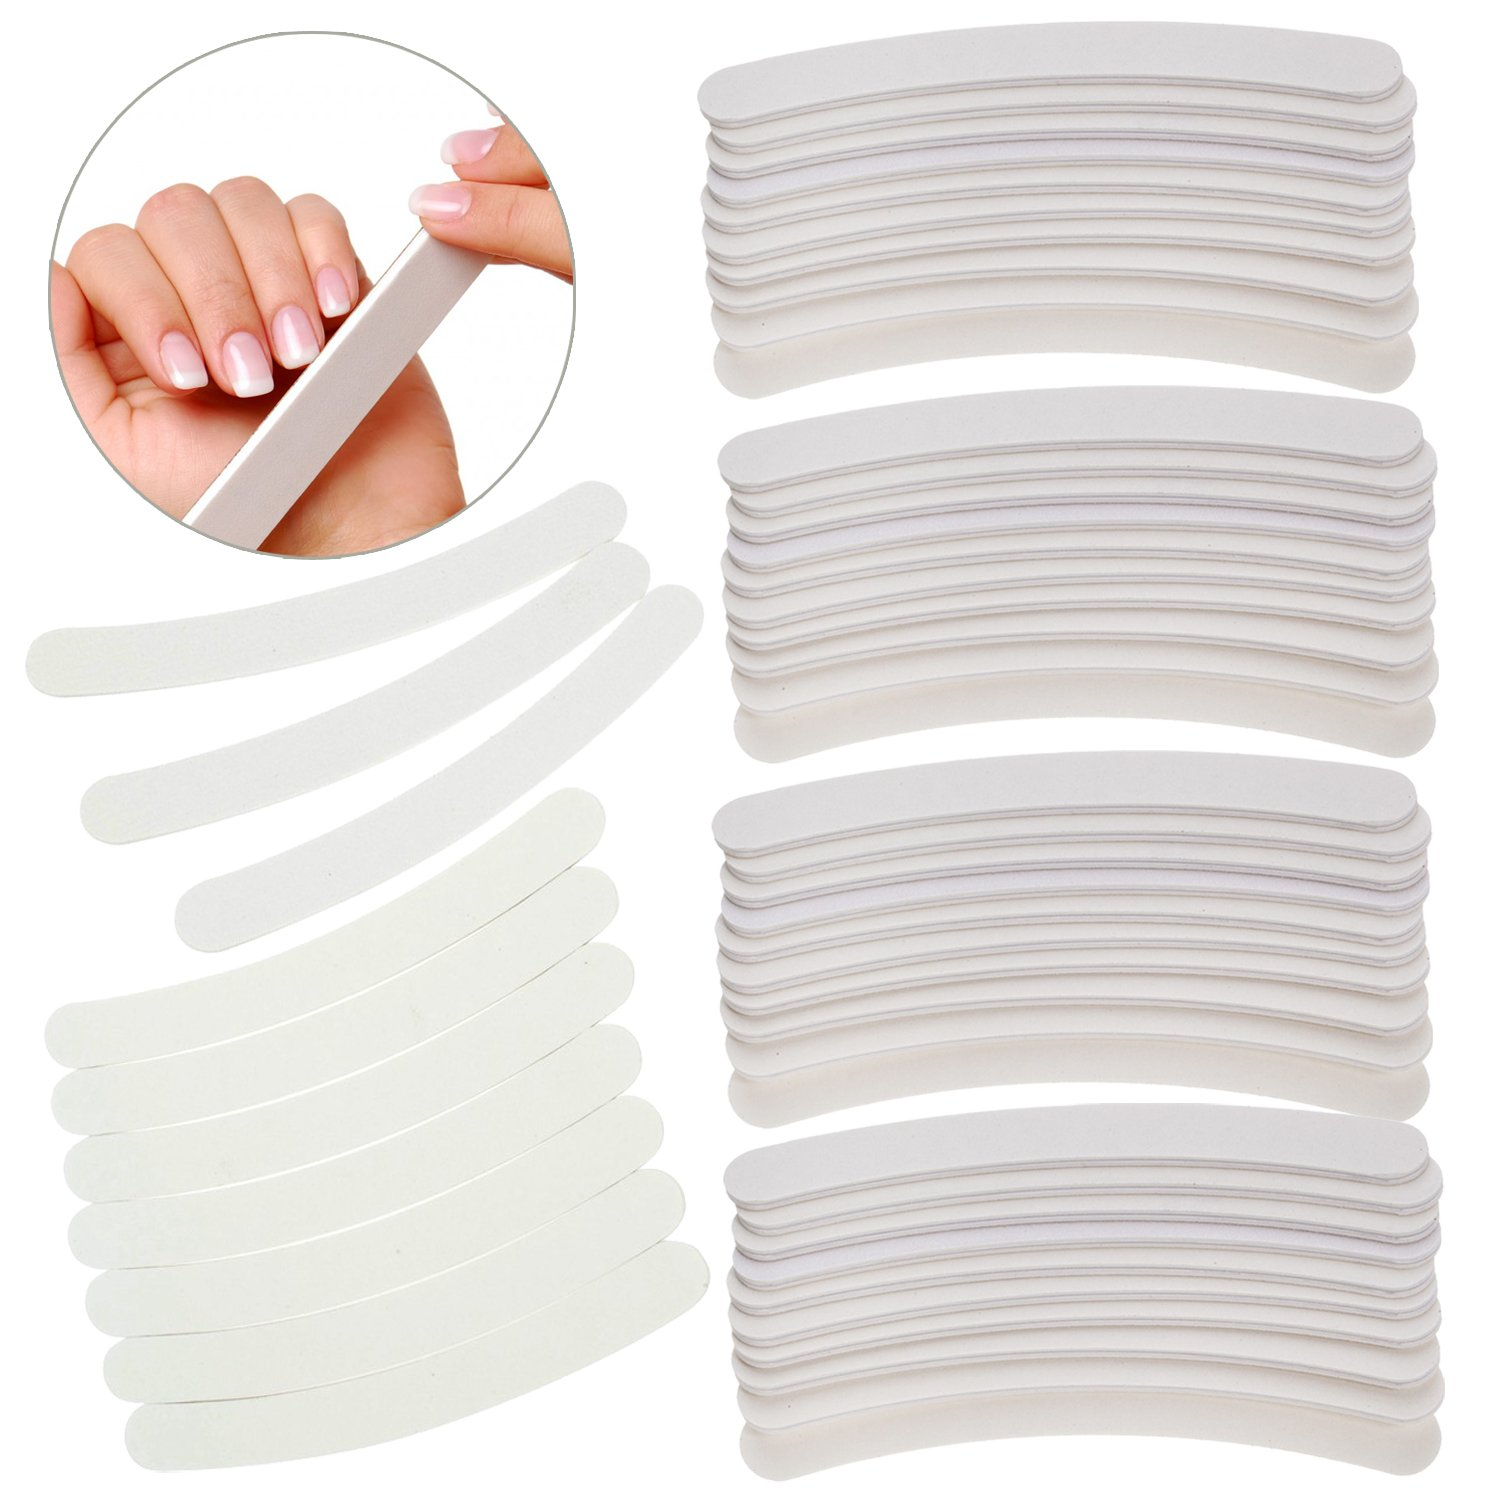 Fantastic Set of 50pcs High Quality Professional Manicure Pedicure Nail Art Accessories 100/180 Boomerang Nails Files / Filers / Sanding Tools In White Colour By VAGA